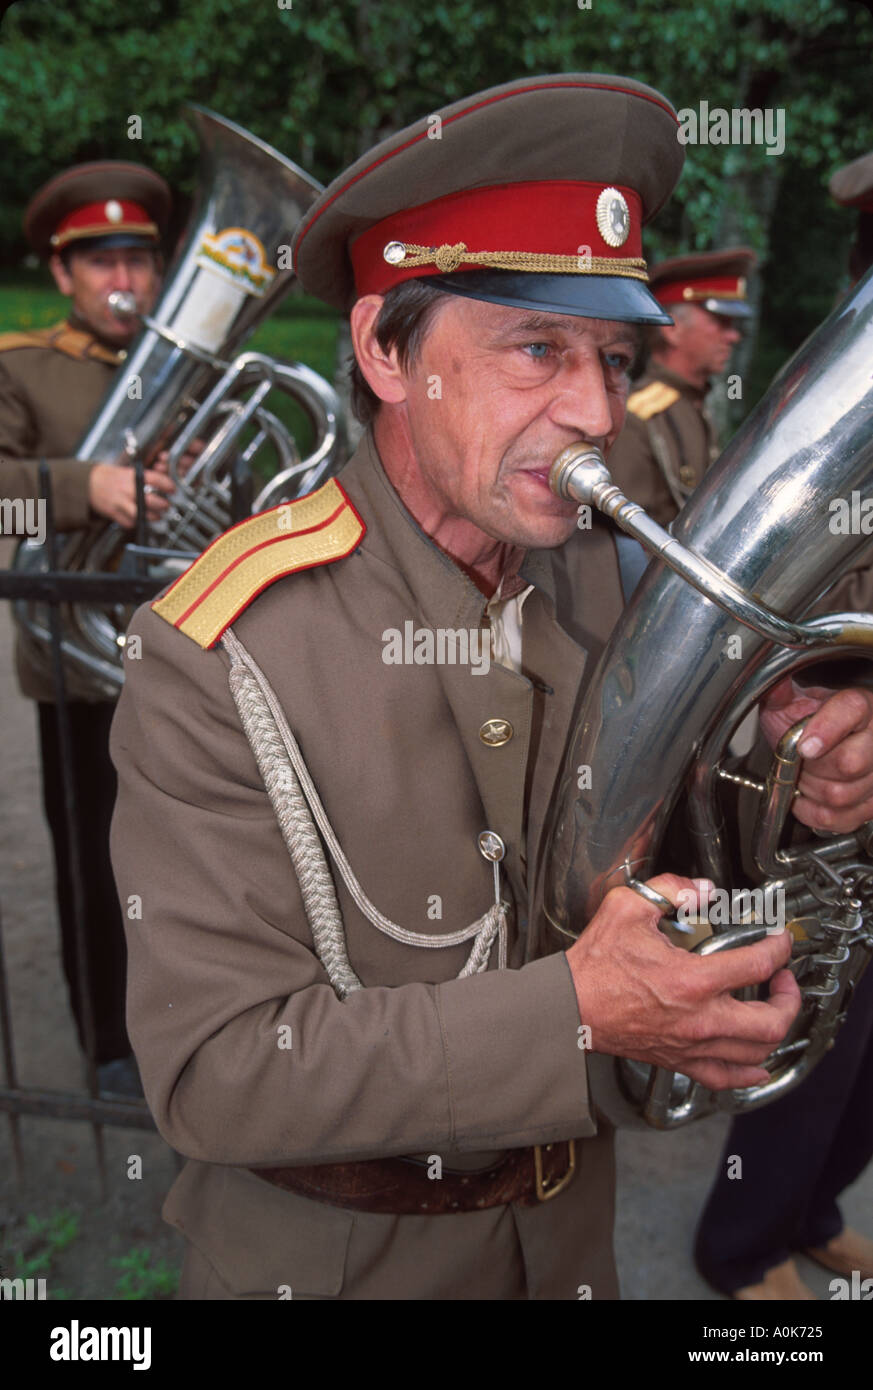 Russia former Soviet Union Pushkin member of band plays for tips near Catherine Palace - Stock Image